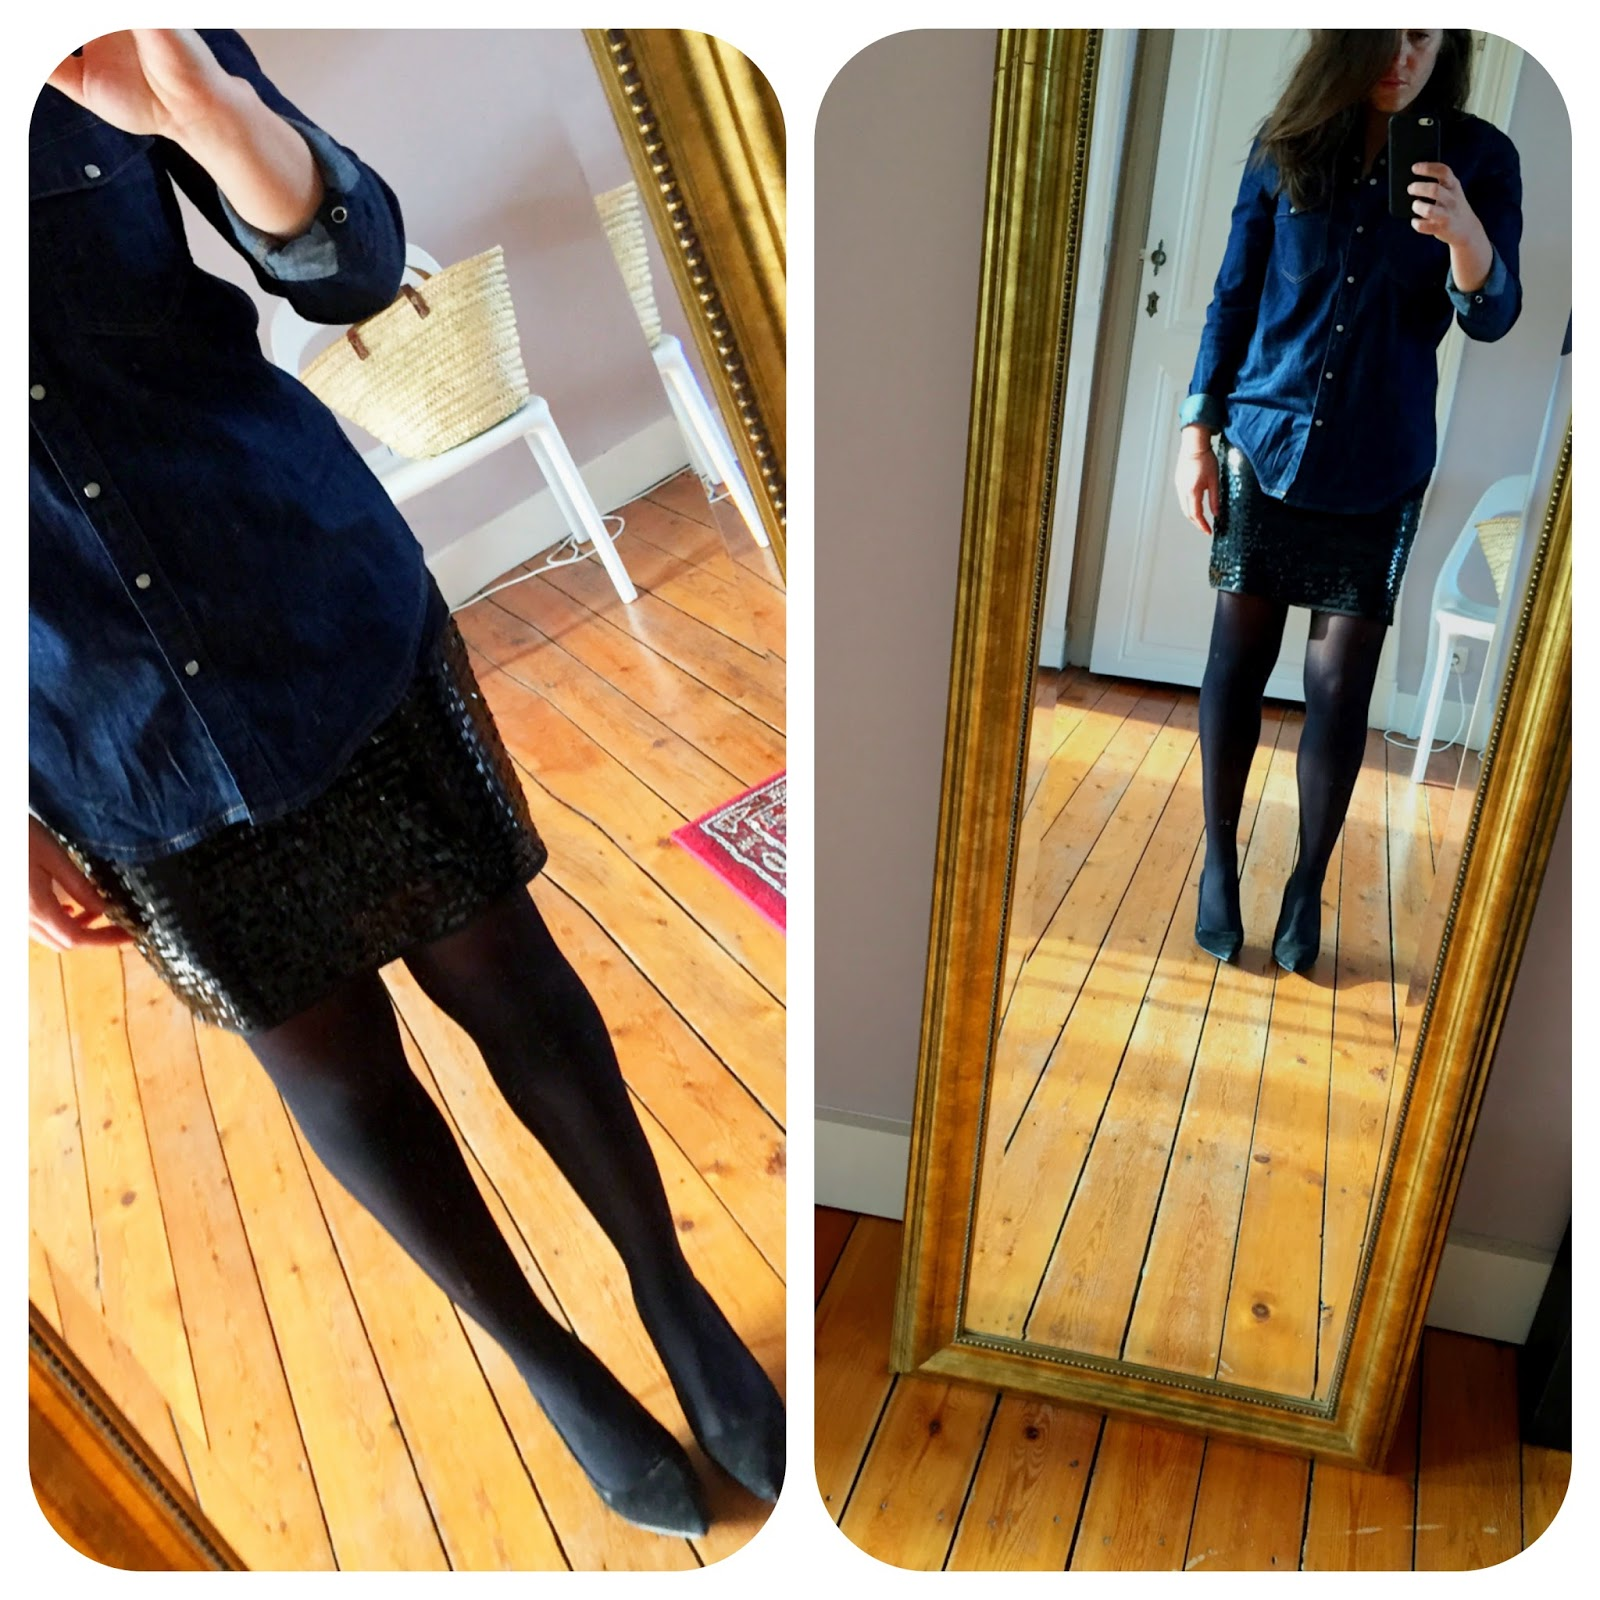 1 outfit, 2 styles